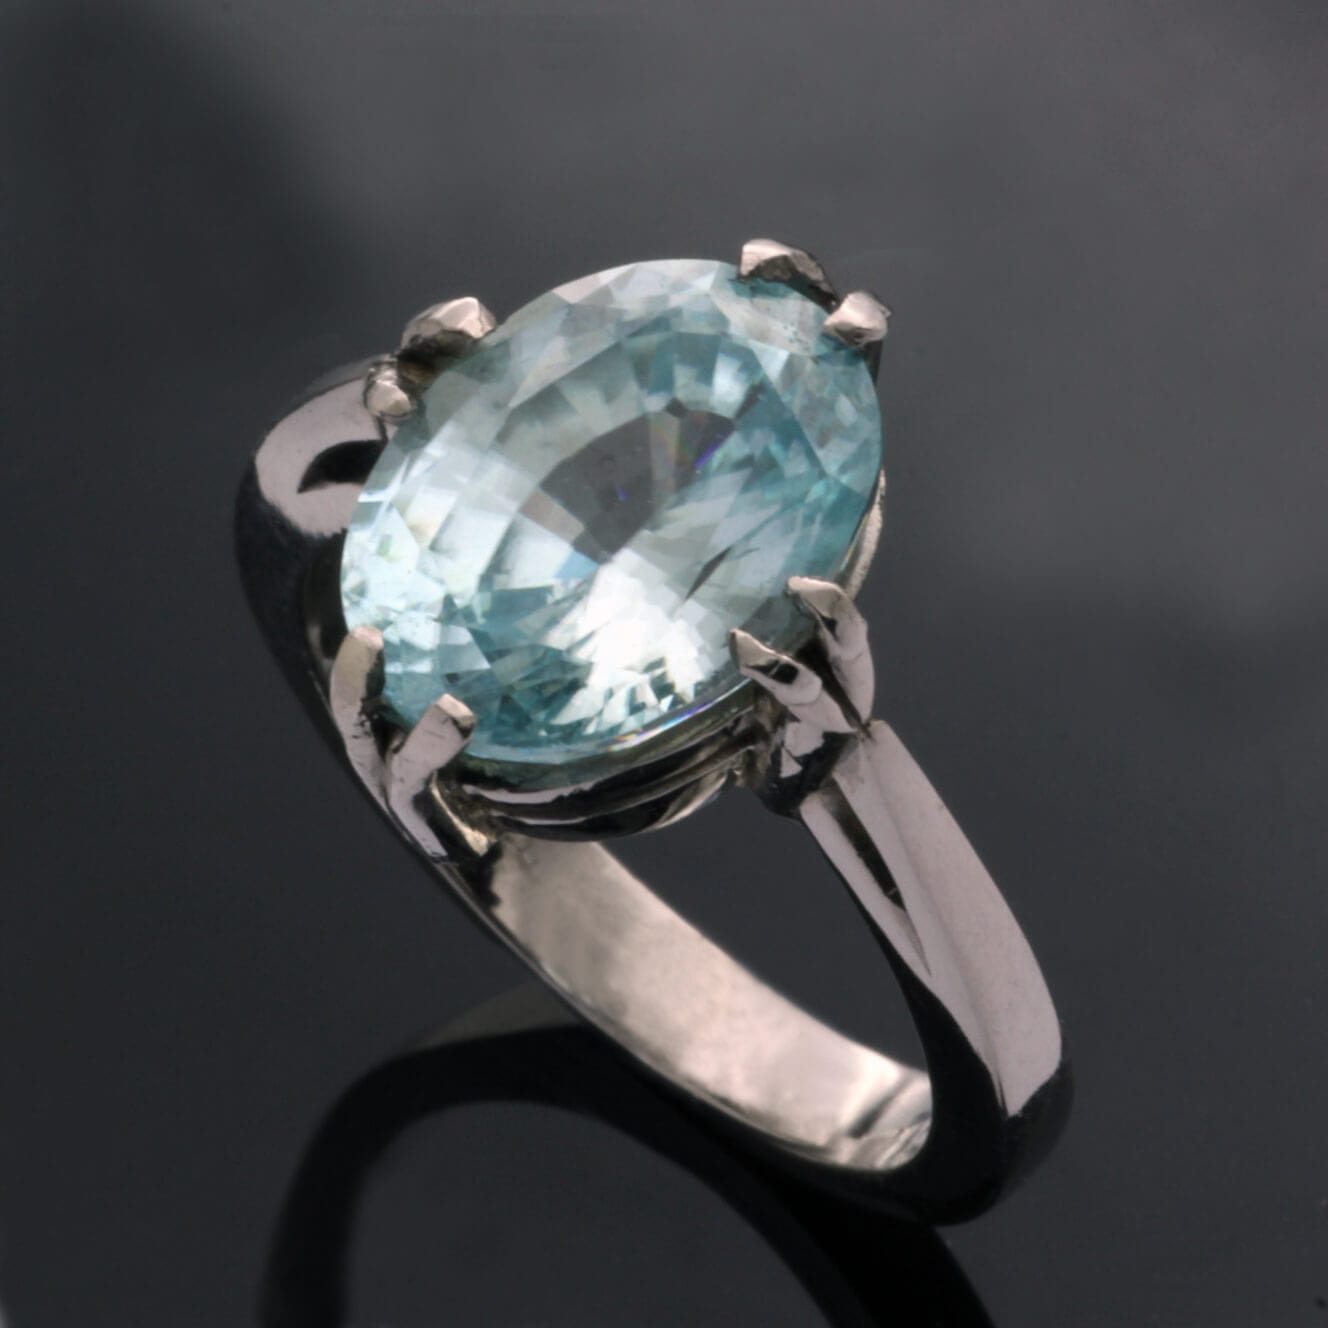 Modern dress ring with Zircon gemstone set in Palladium